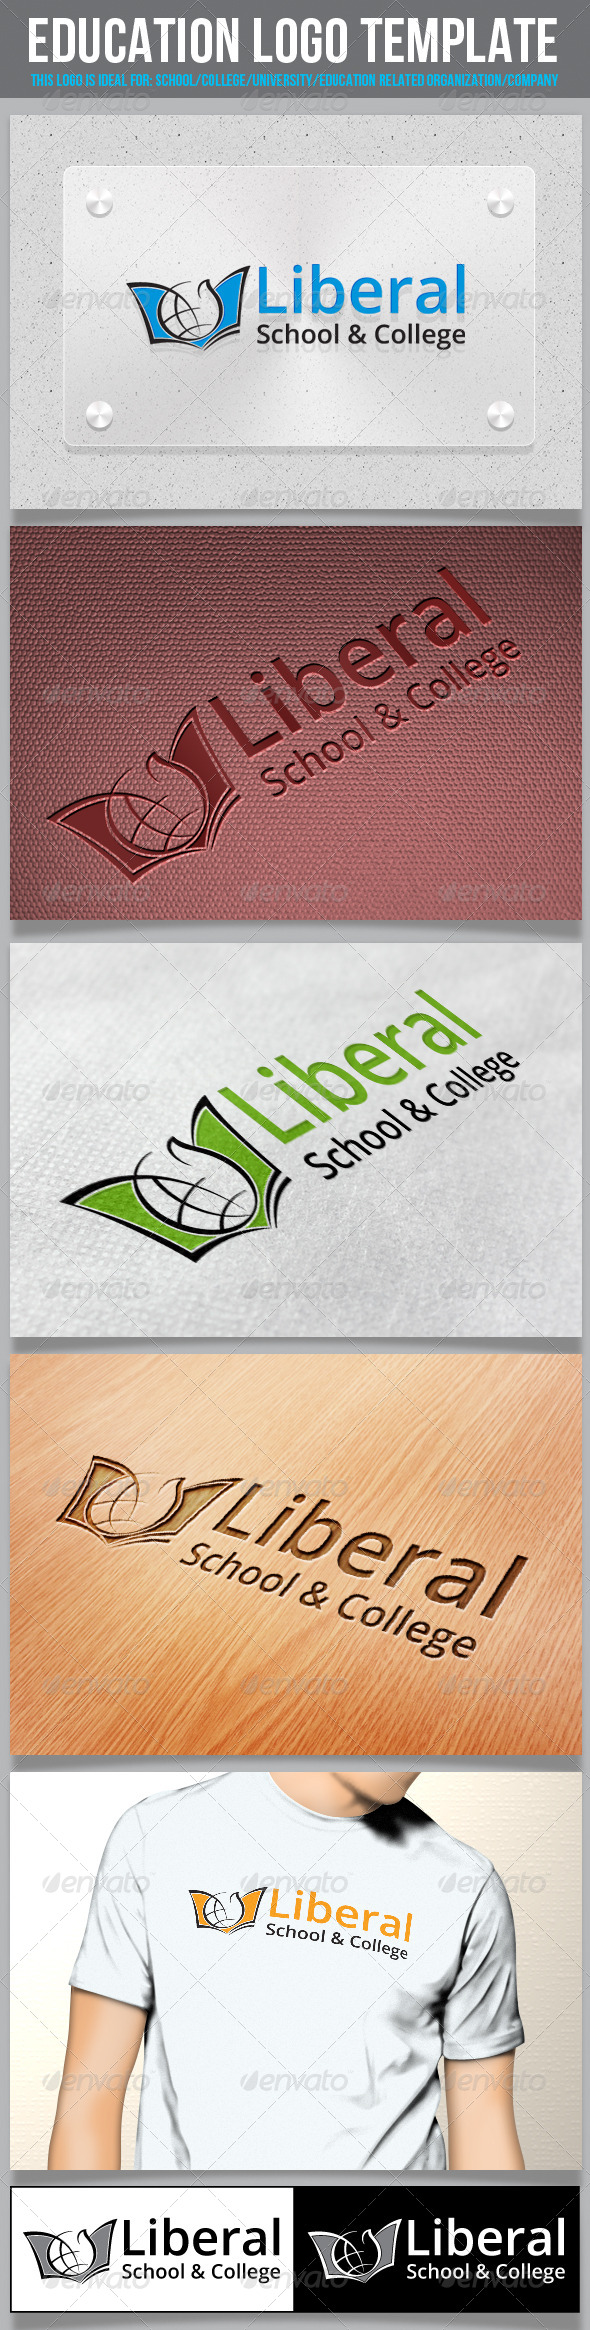 GraphicRiver Education Logo Template 5789510